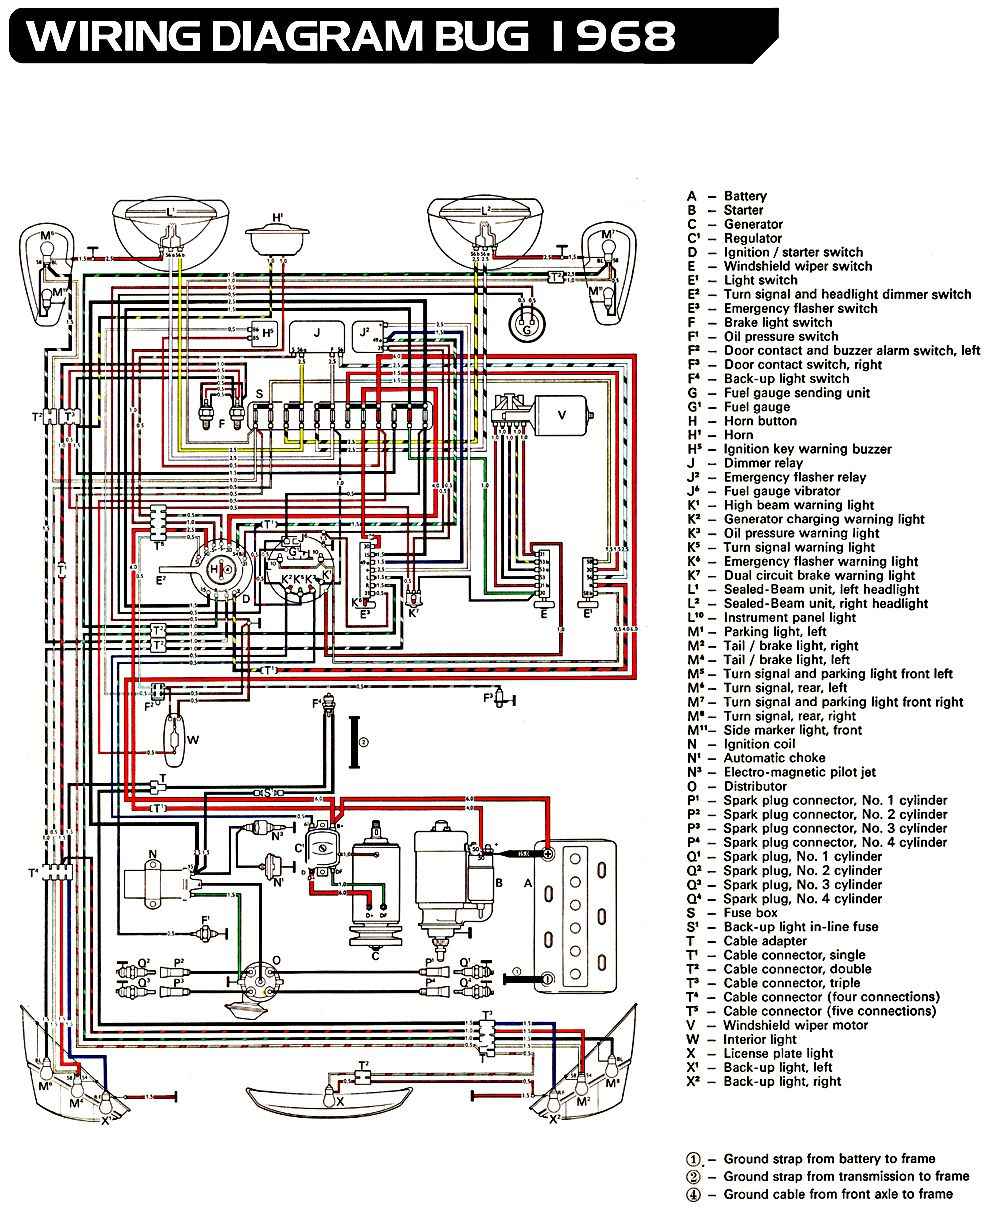 3a1908112d3826270ed5e3be362292bf vw bug ignition wiring diagram 73 vw wiring diagram free vw wiring diagrams at readyjetset.co